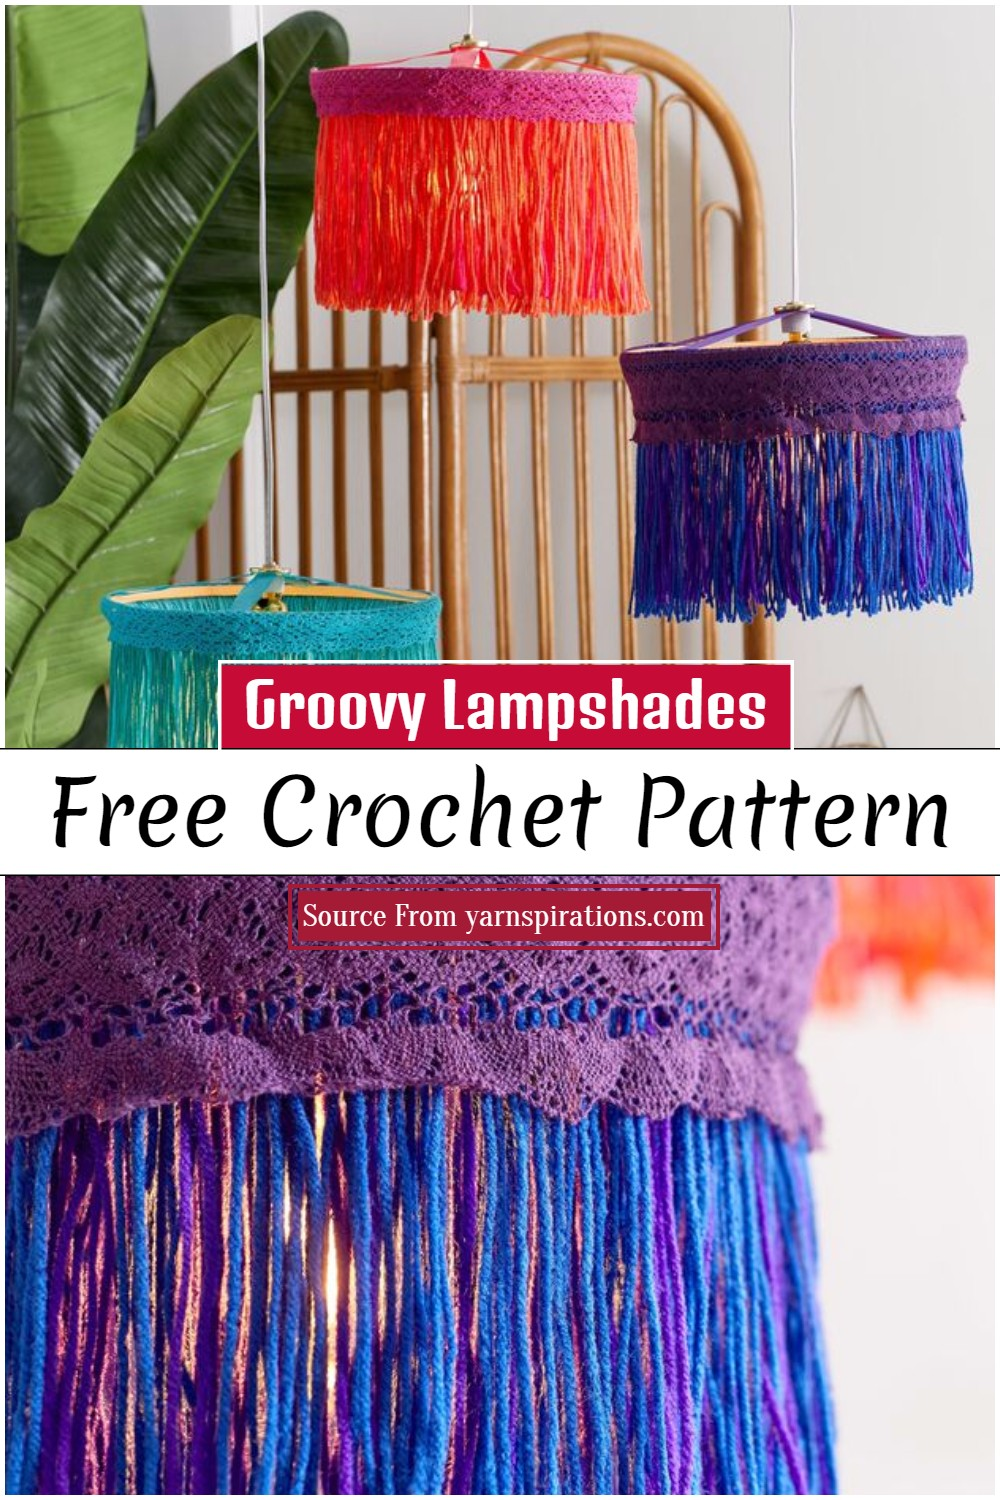 Free Crochet Groovy Lampshades